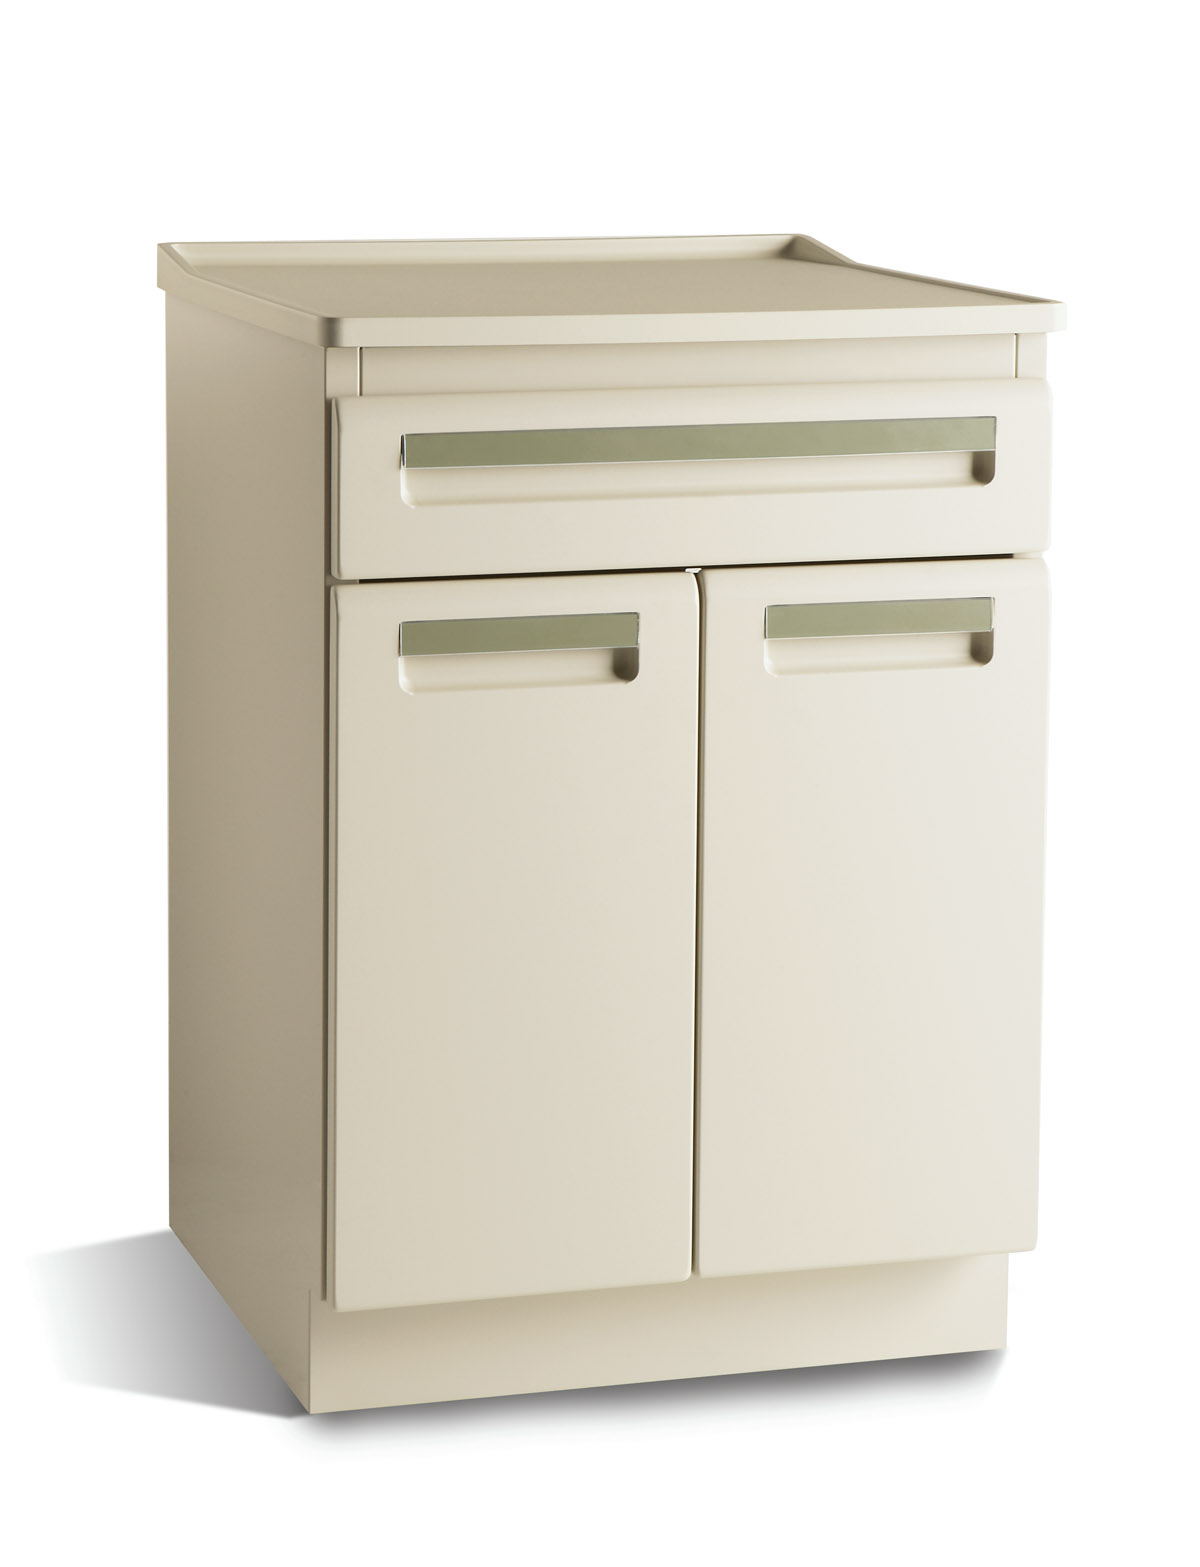 CABINET, TREATMENT, MIDMARK 6060, W/SHELF, PEBBLE GREY